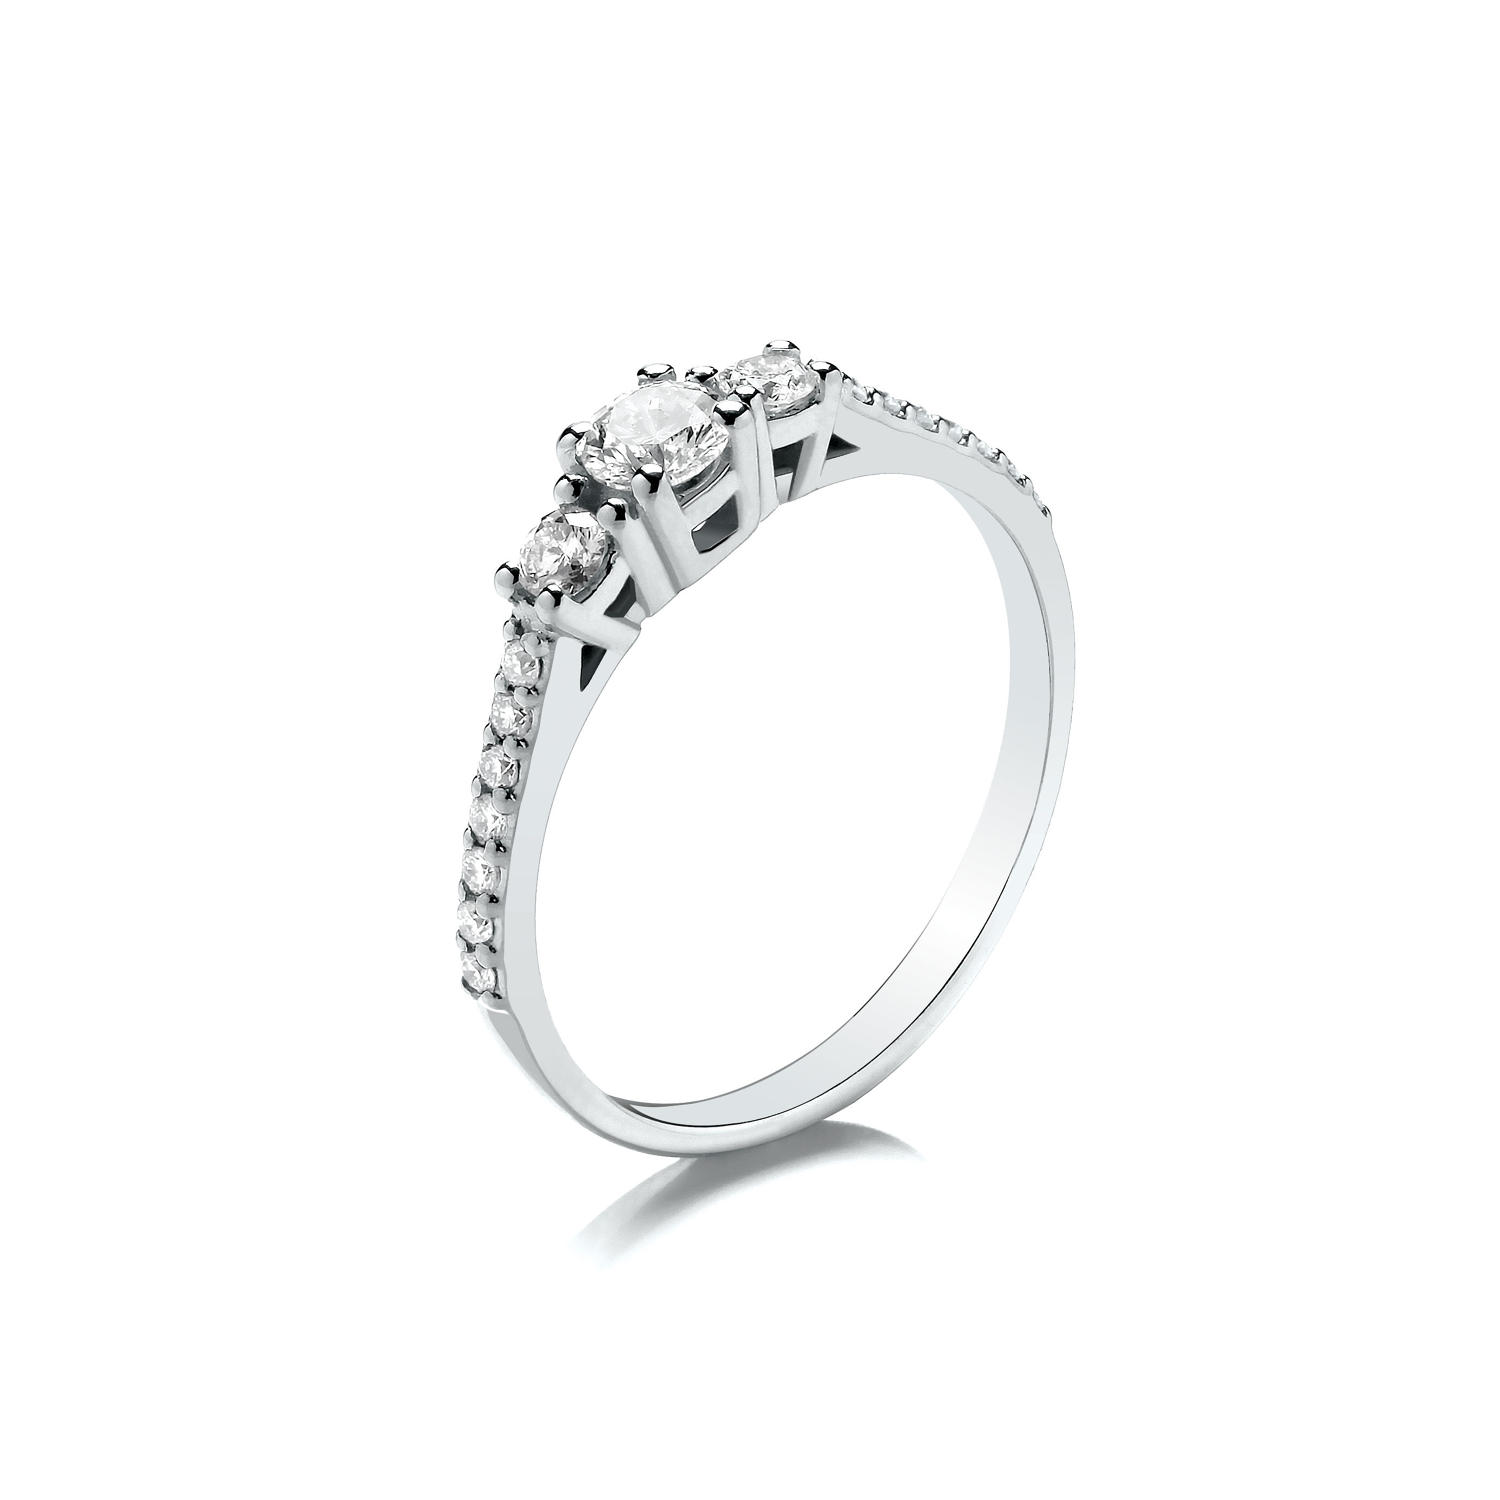 0.40ct Trilogy Ring, With Graduated Stones and Set Shoulders